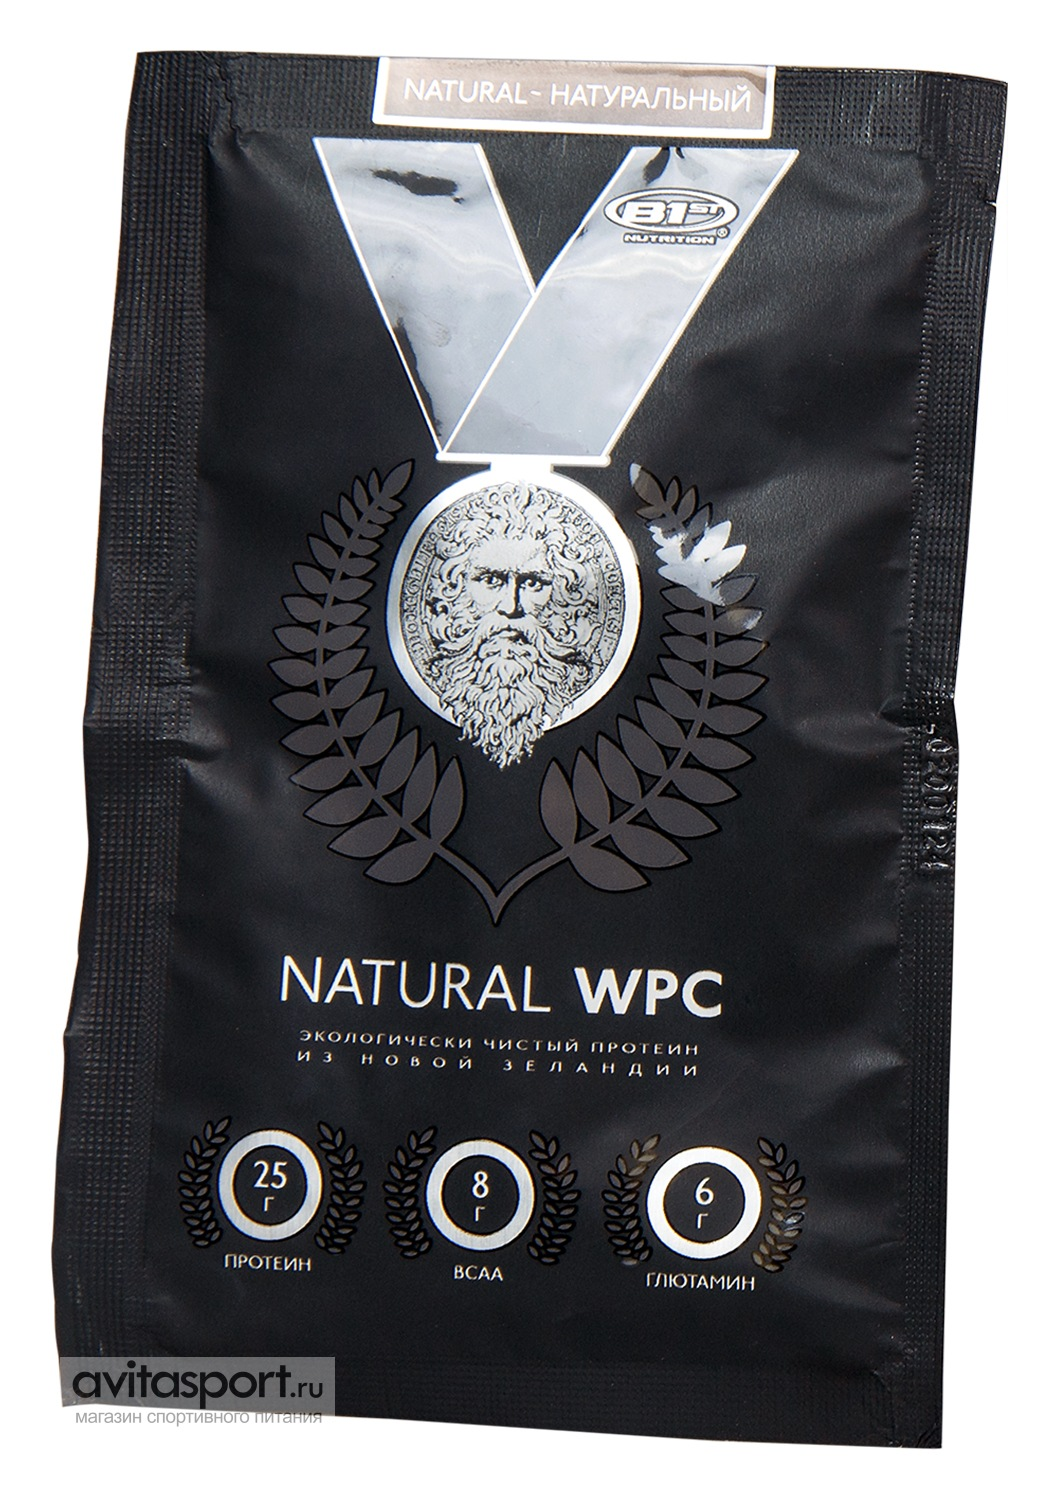 B1st Nutrition Natural WPC 31 г